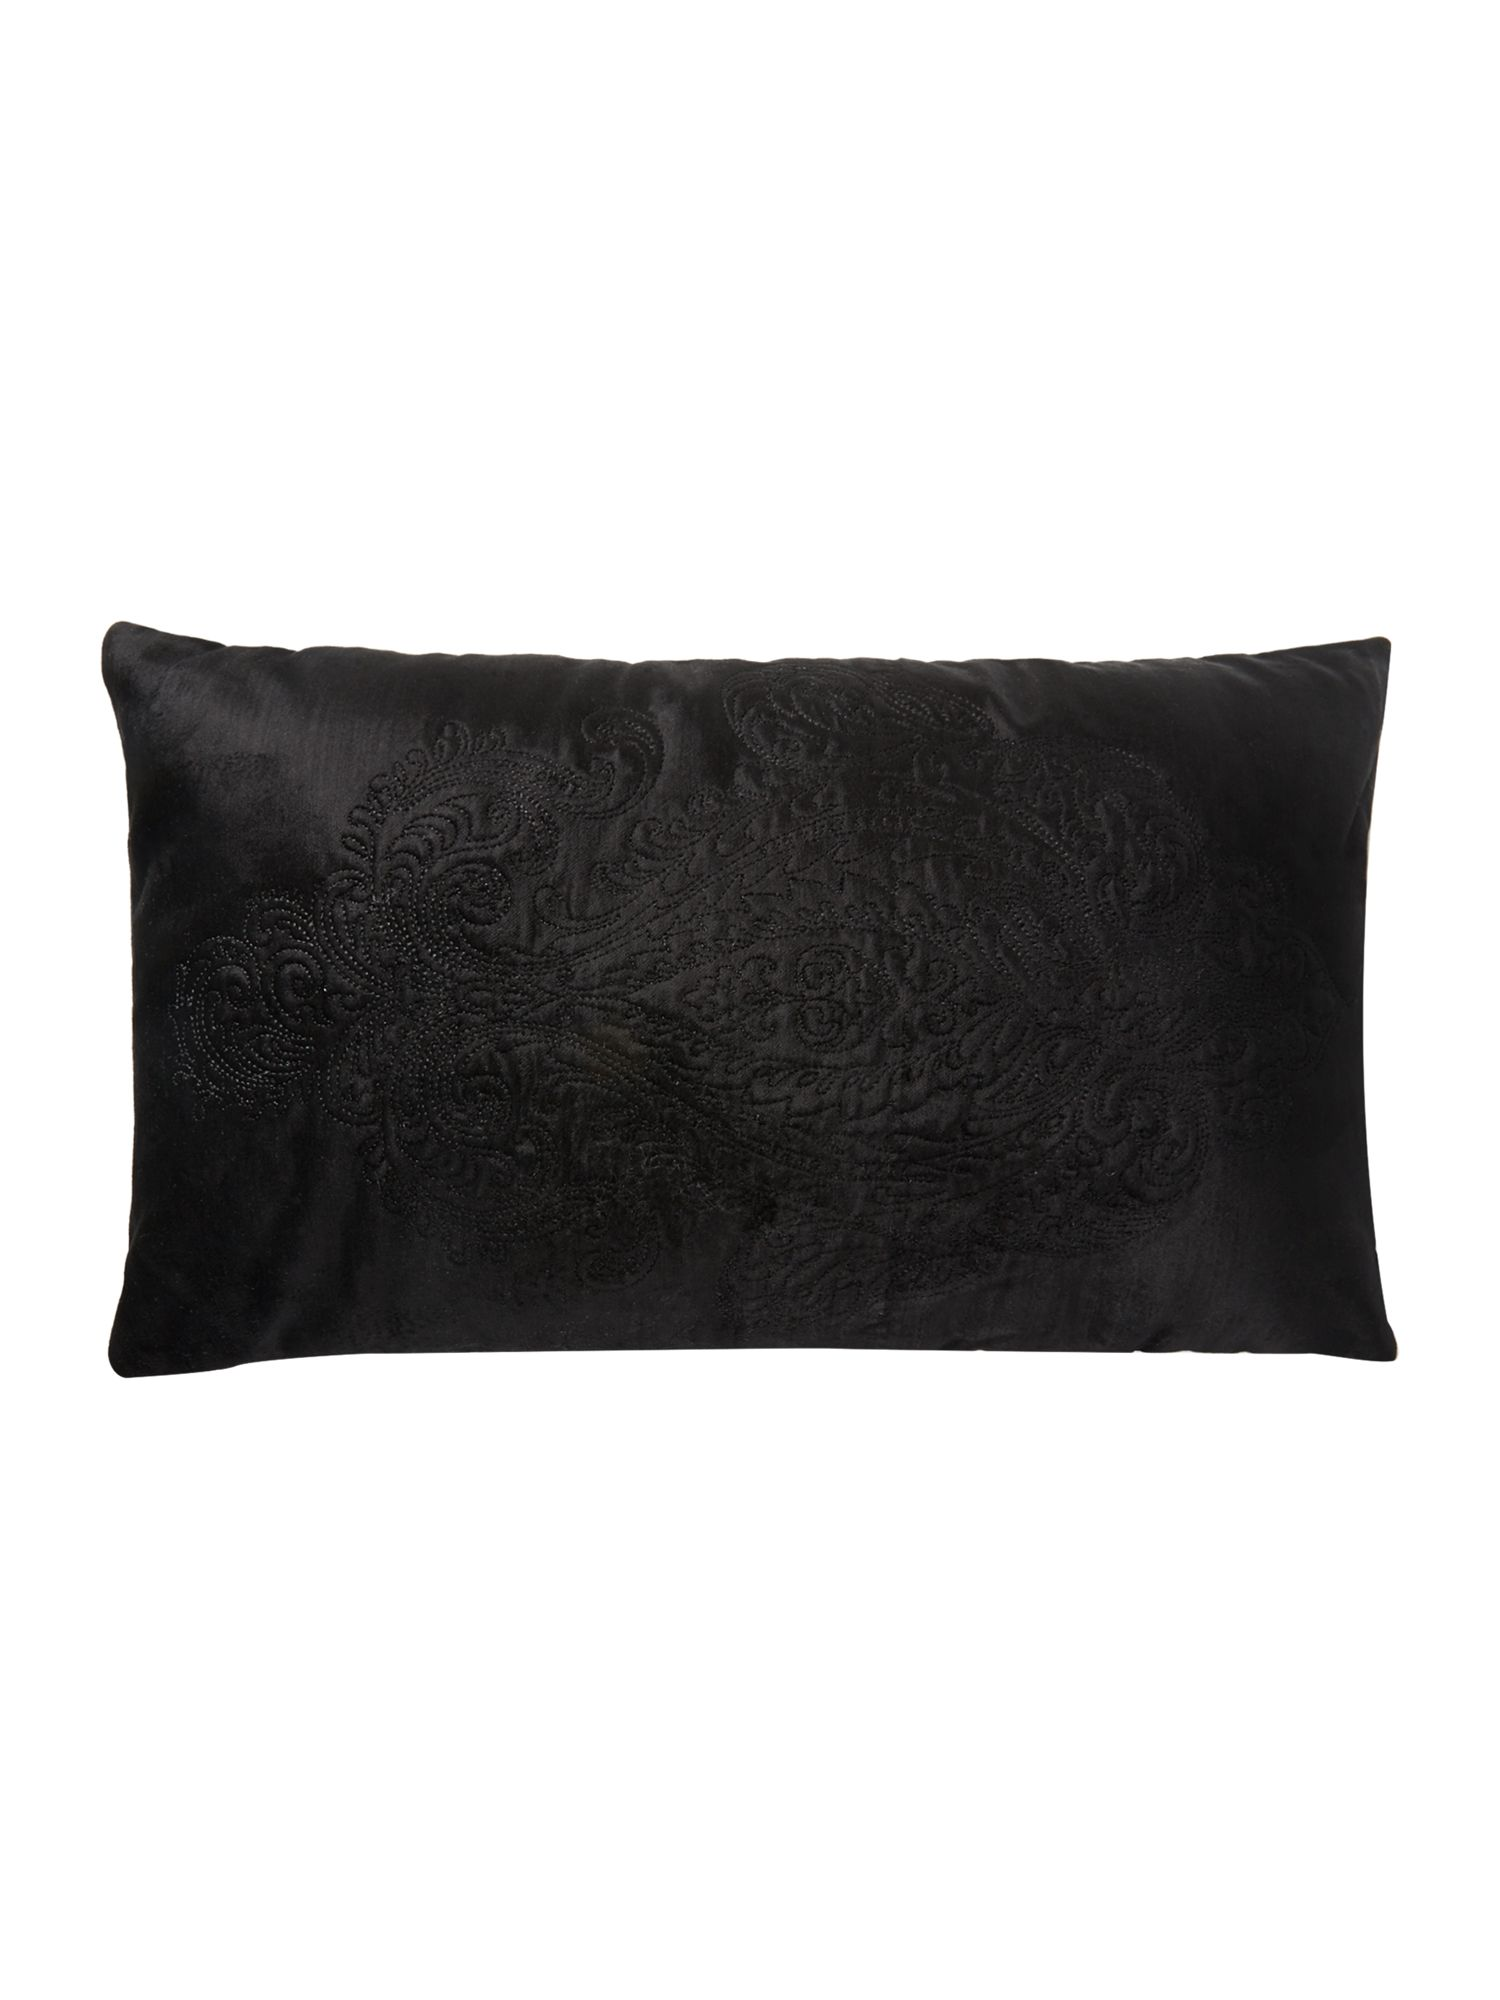 Zelda cushion in black